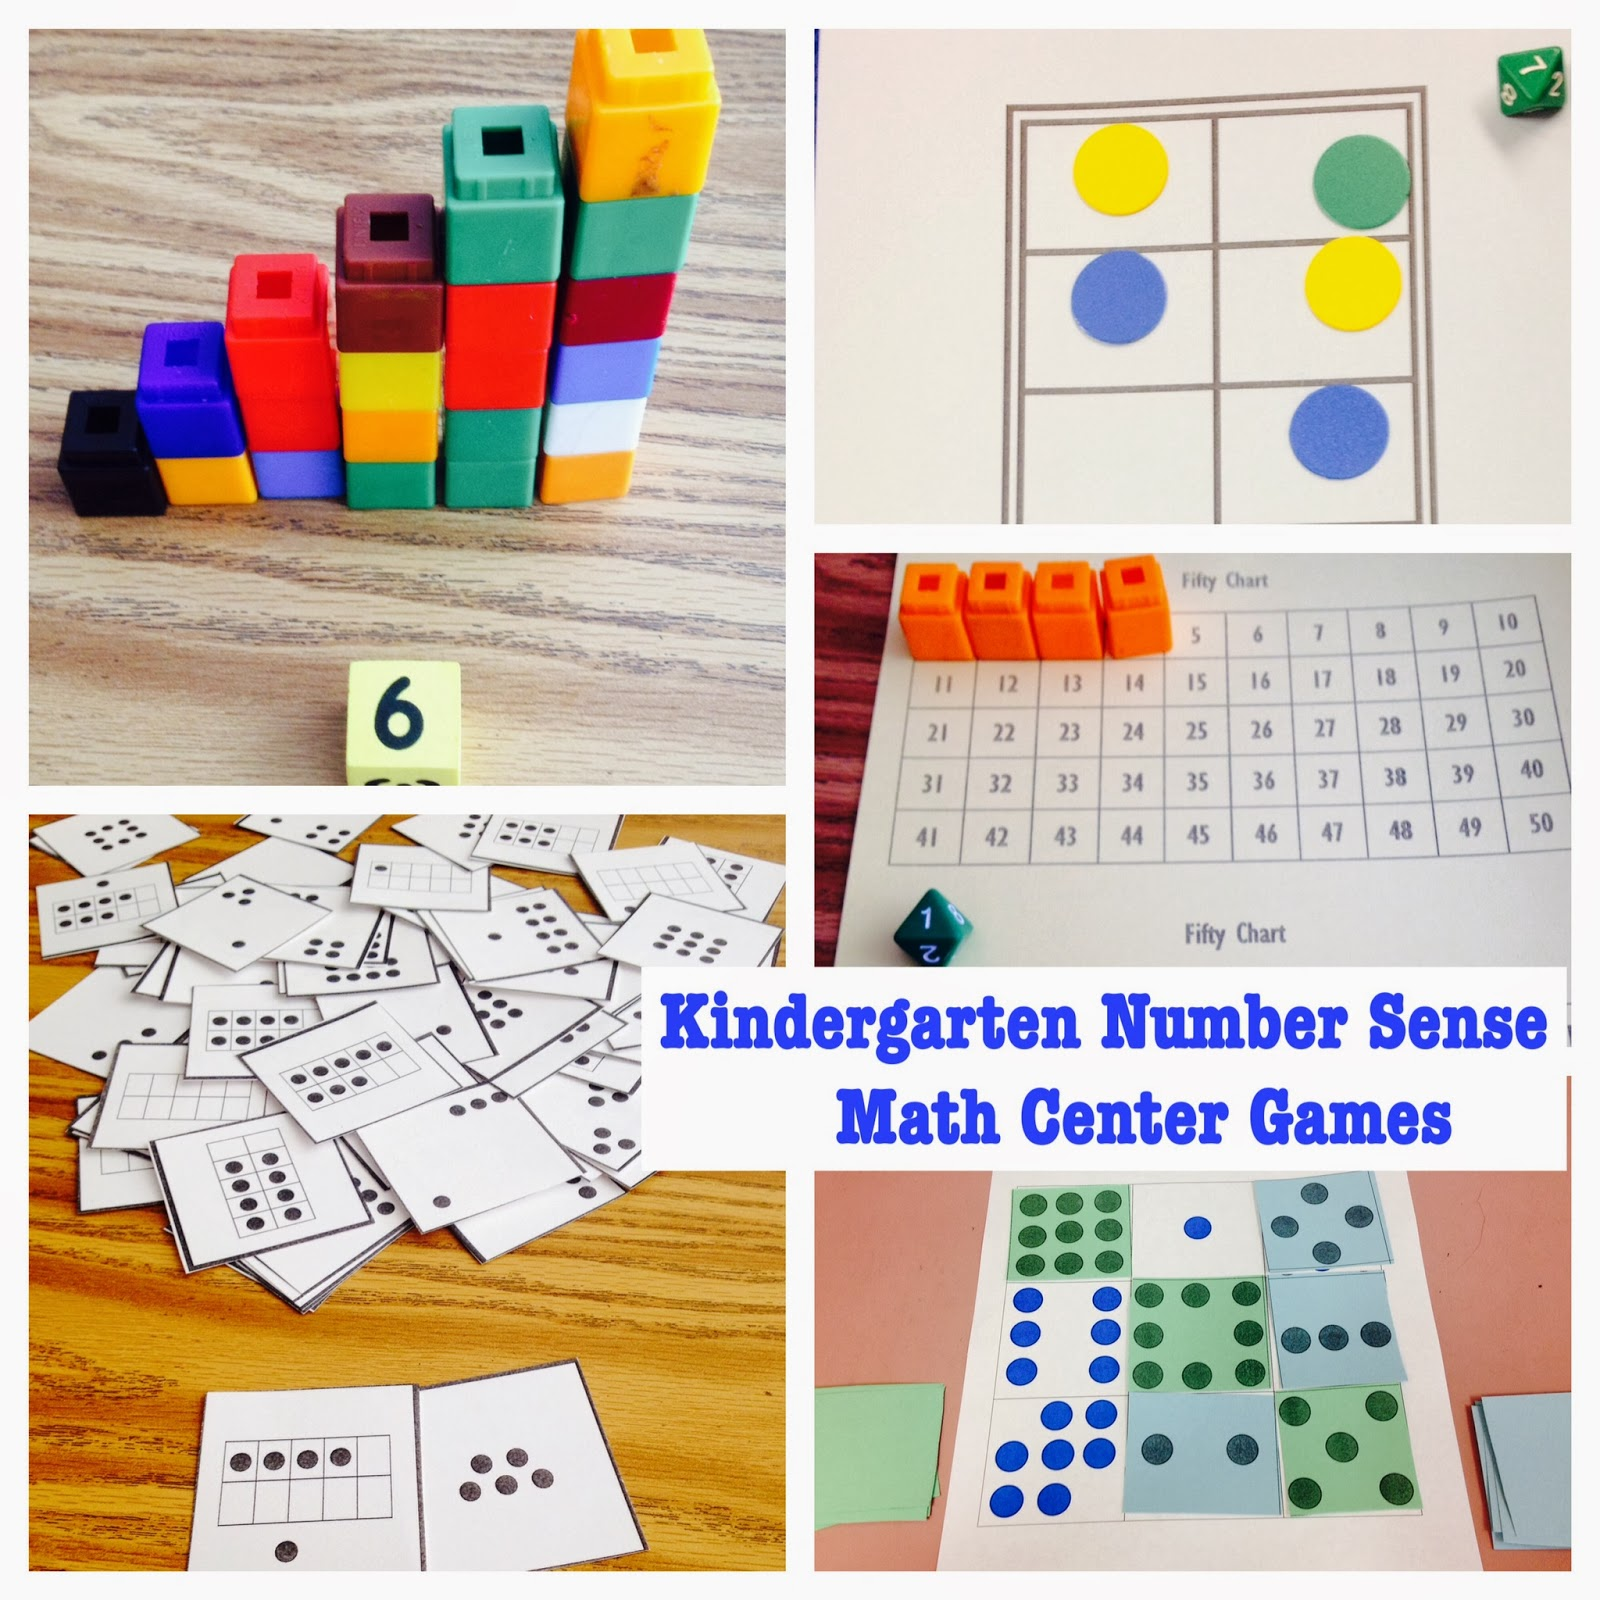 Kindergarten Is Crazy (Fun): Teaching Math in Kindergarten ...